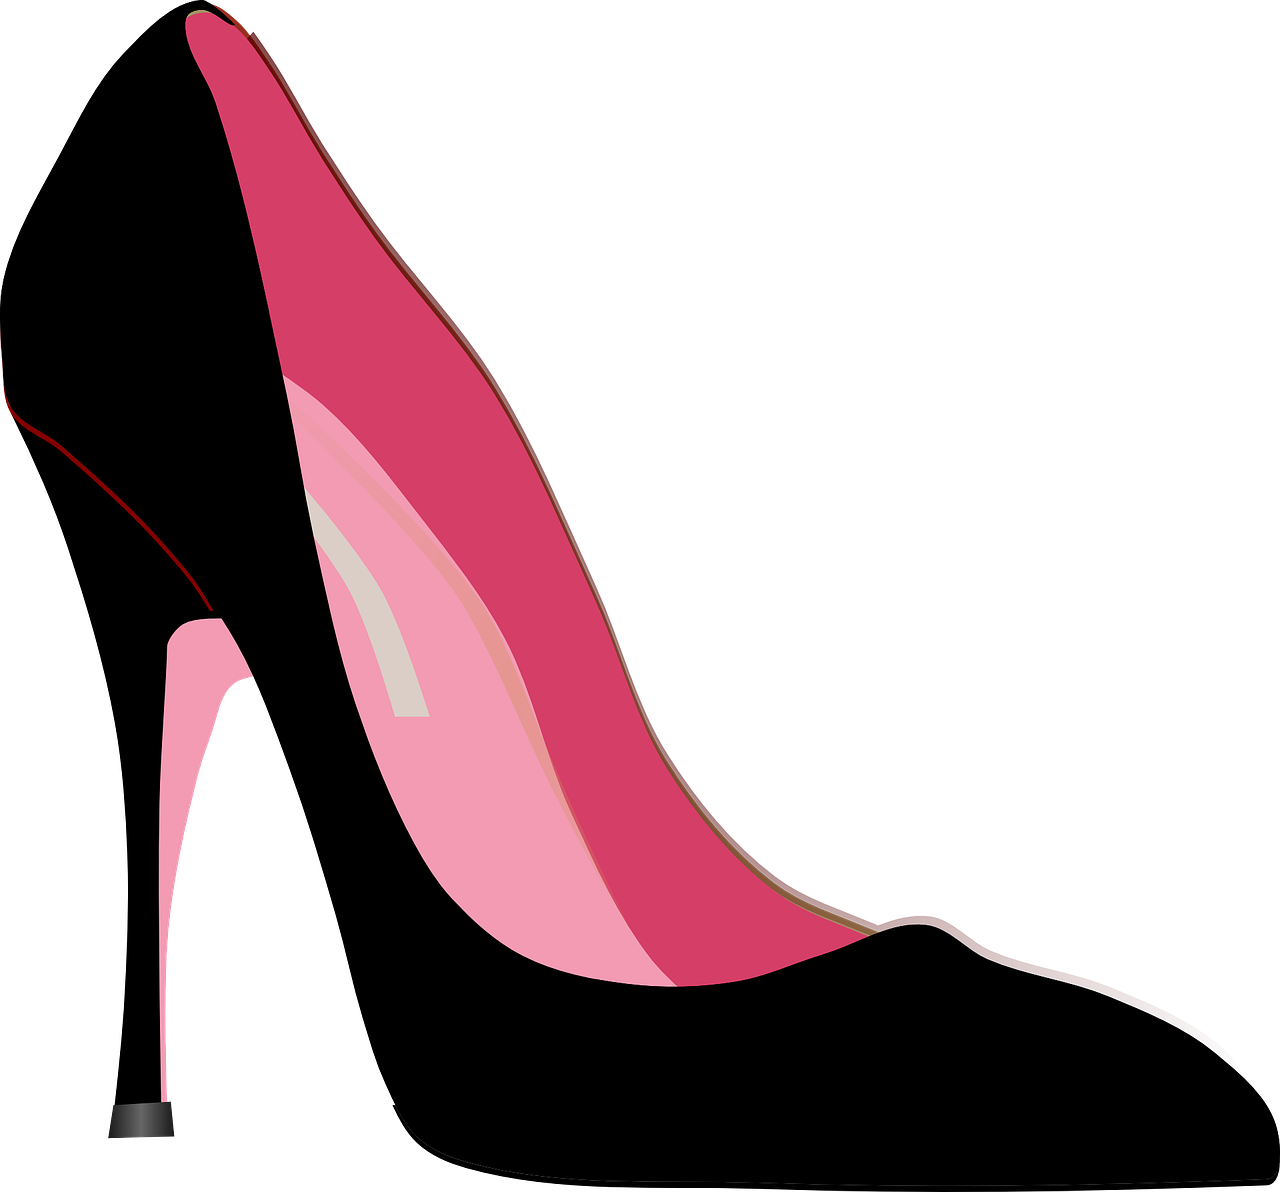 High Heels Free Vector Icons Designed By Freepik Heels Png Vector Icon Design